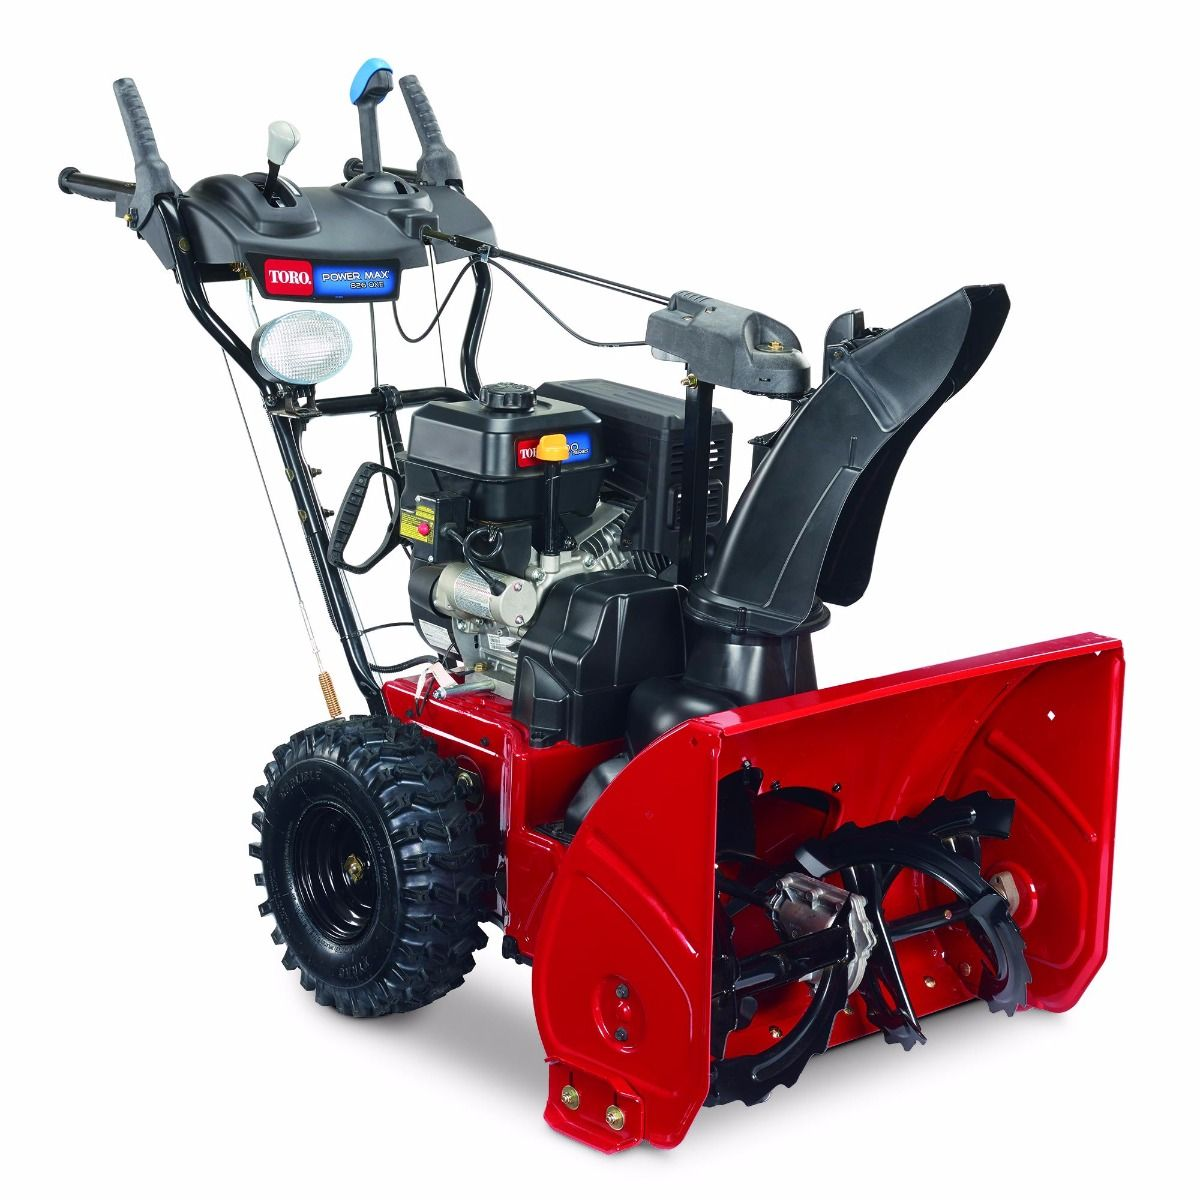 Toro Power Max 824OE Two-Stage Electric Start Snowthrower